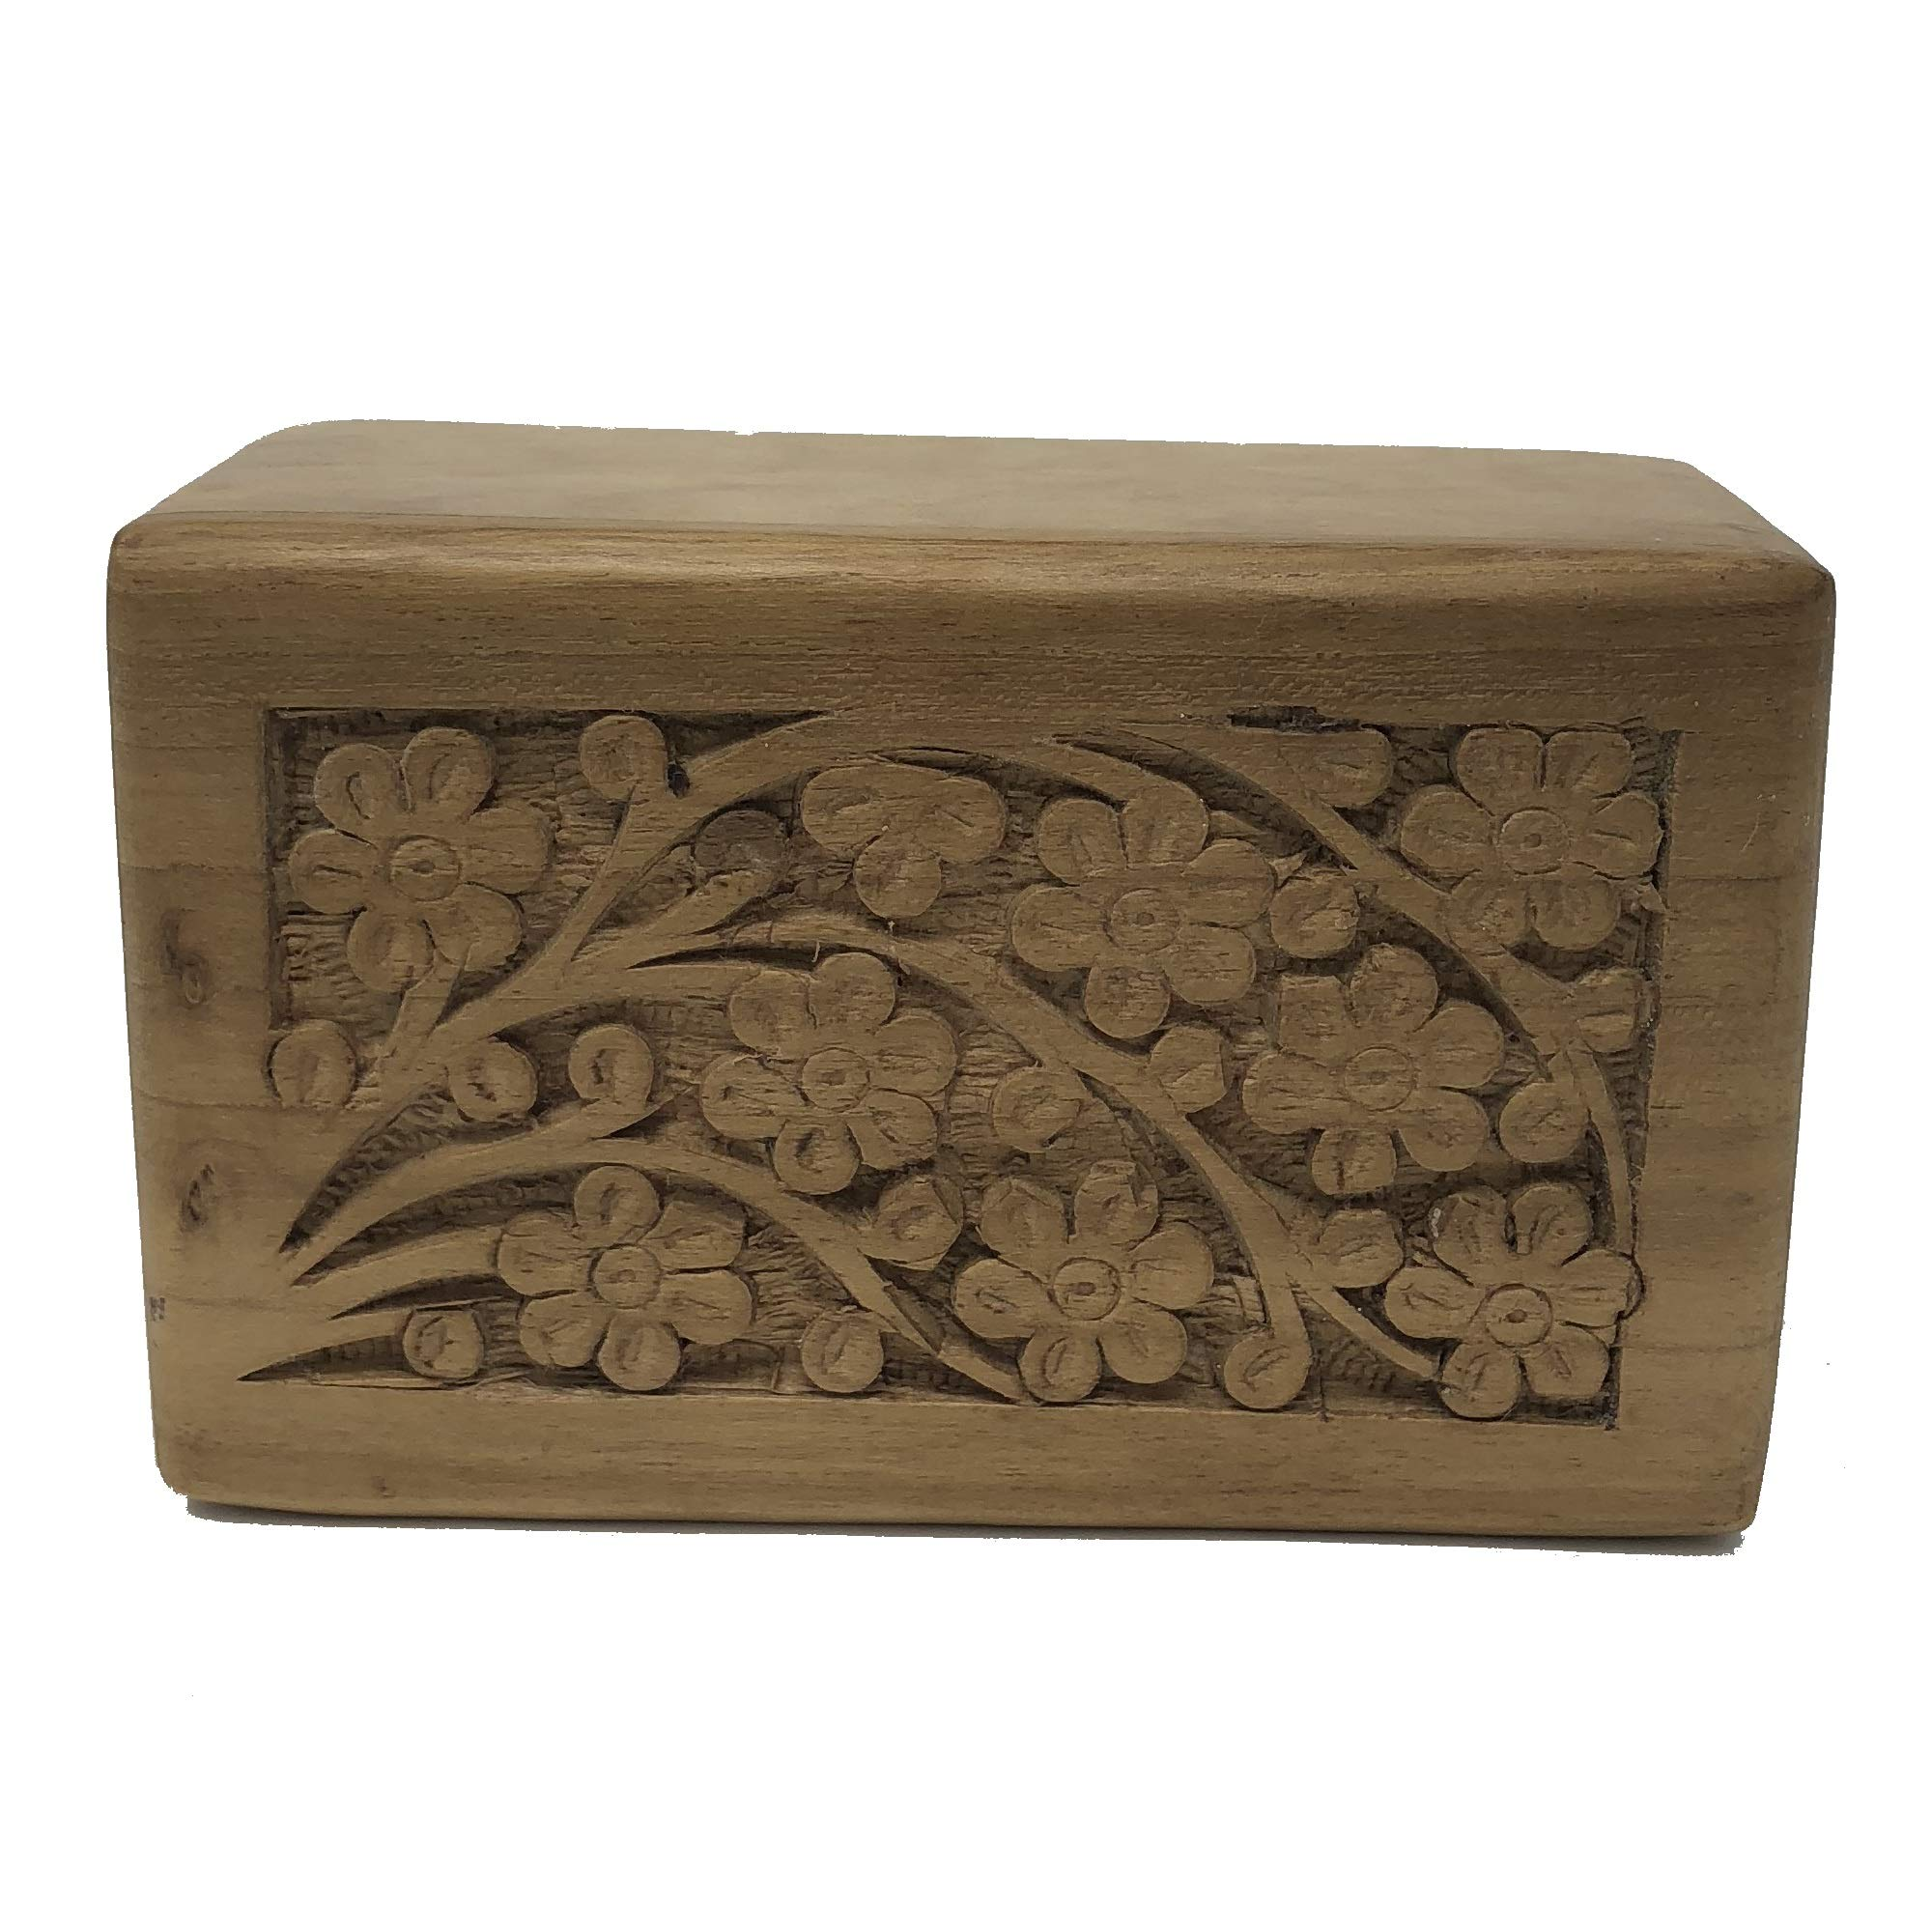 Teak Wood Affordable Urn - Engraved Carved Top Tree of Life - for Human or Pet Ashes Cremated Remains (X-Small)